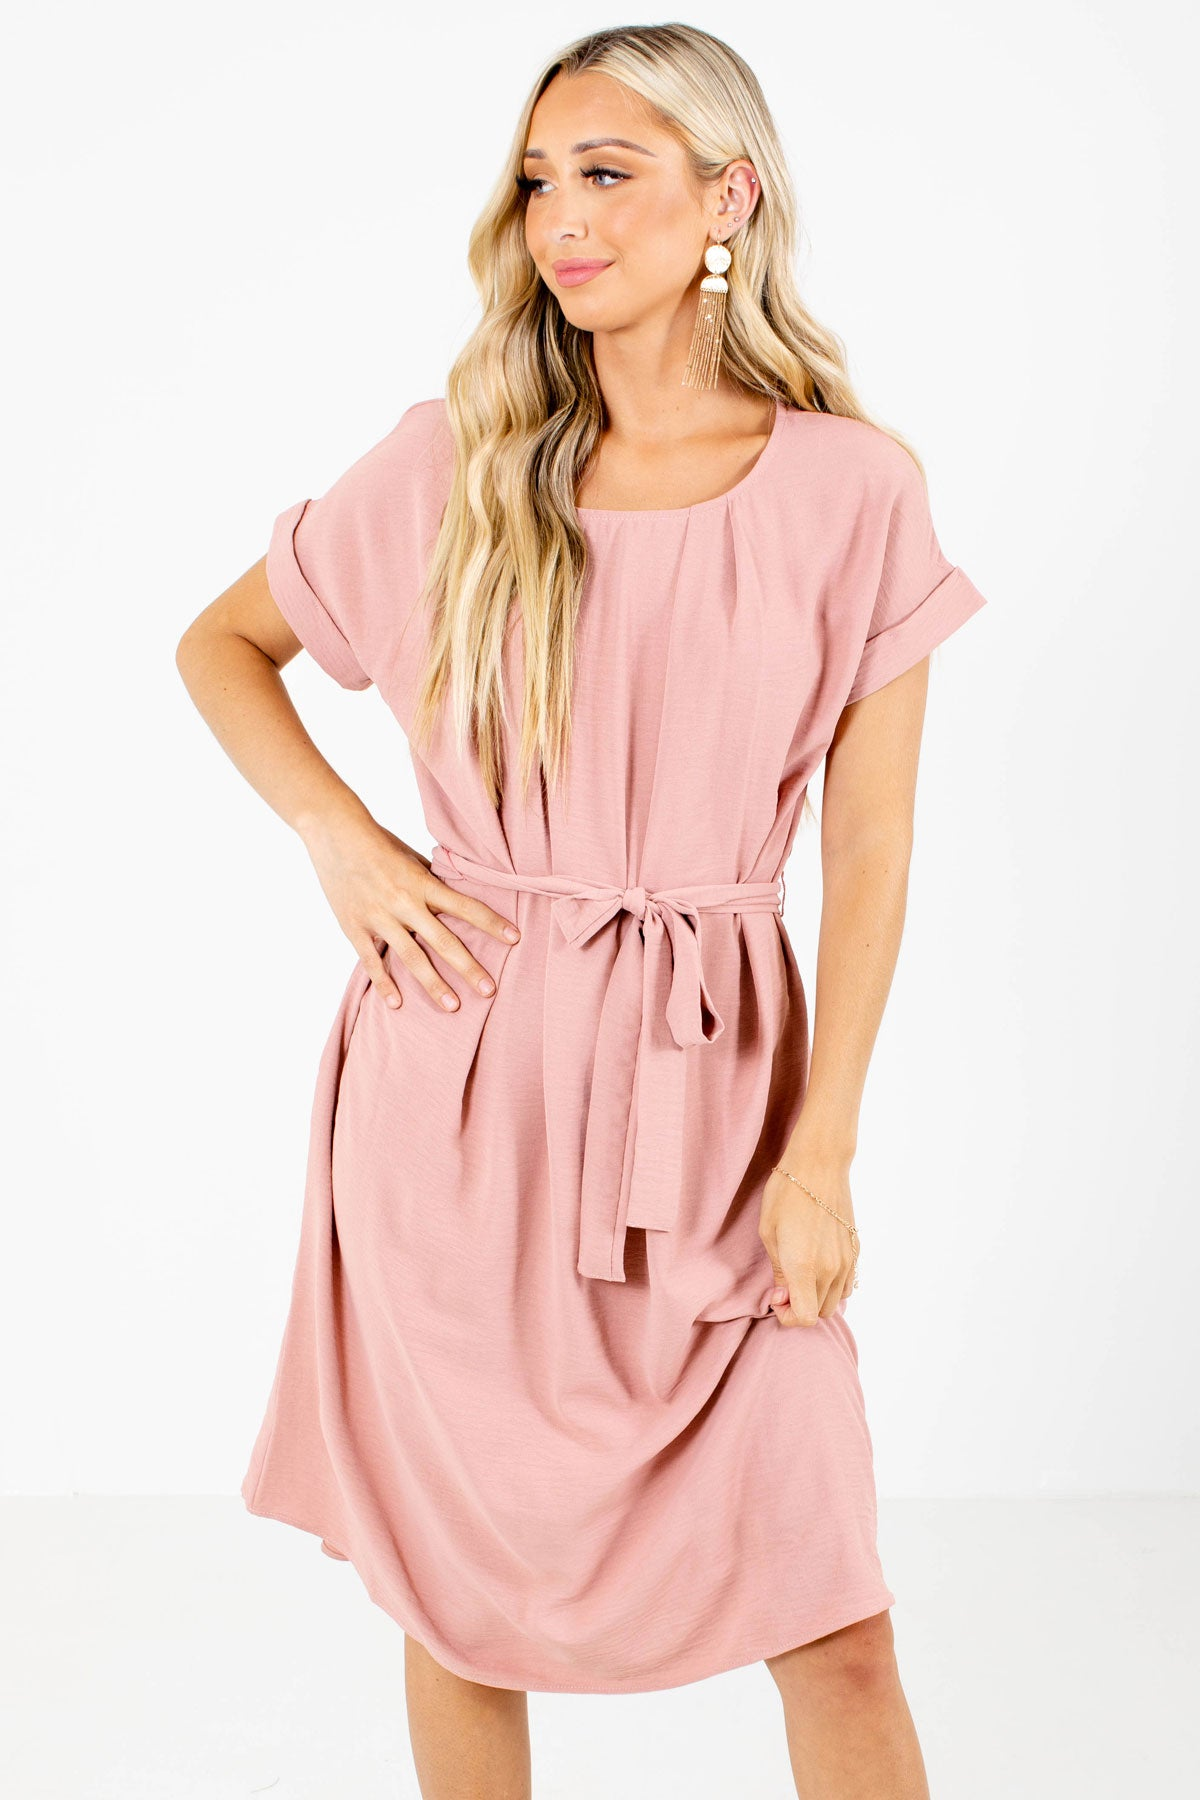 Mauve Waist Tie Detailed Boutique Knee-Length Dresses for Women